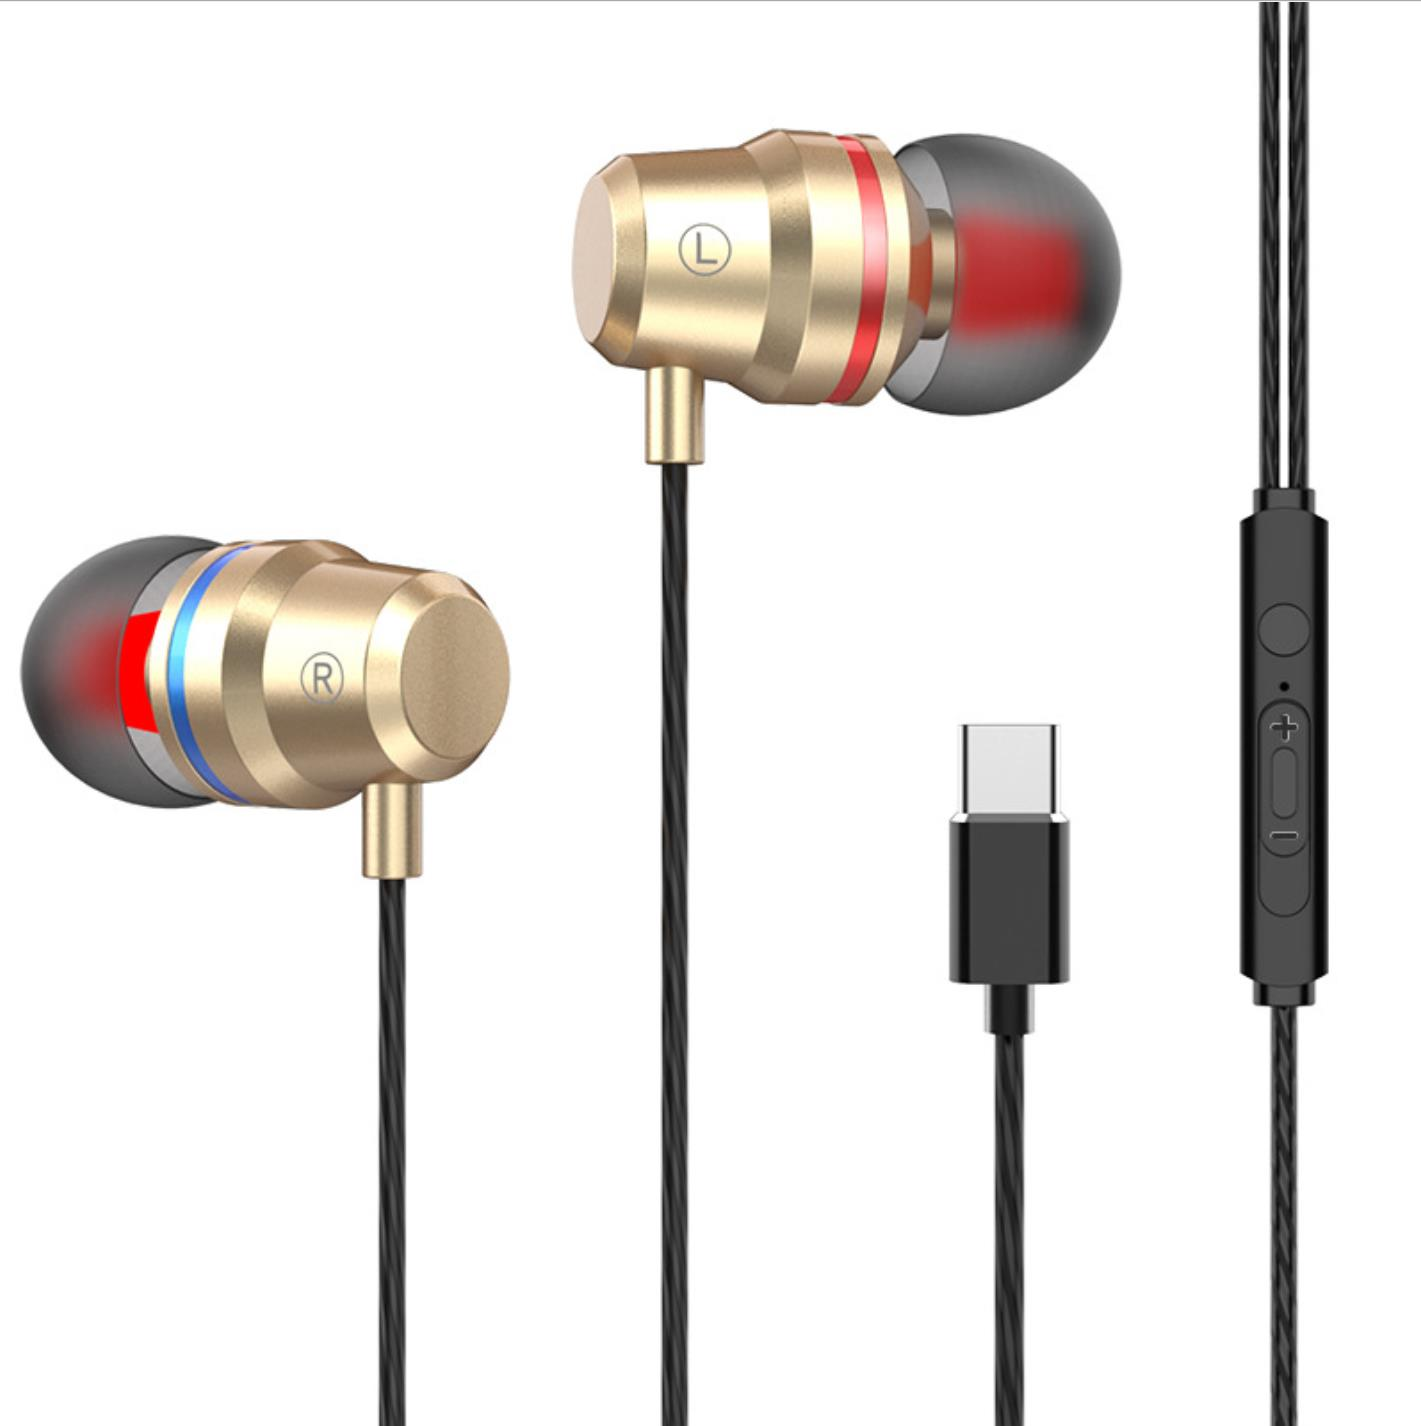 G2 Ergonomic Headset Type-c Subwoofer In-ear Wired  Control  Headset With Built-in High-definition Microphone Golden